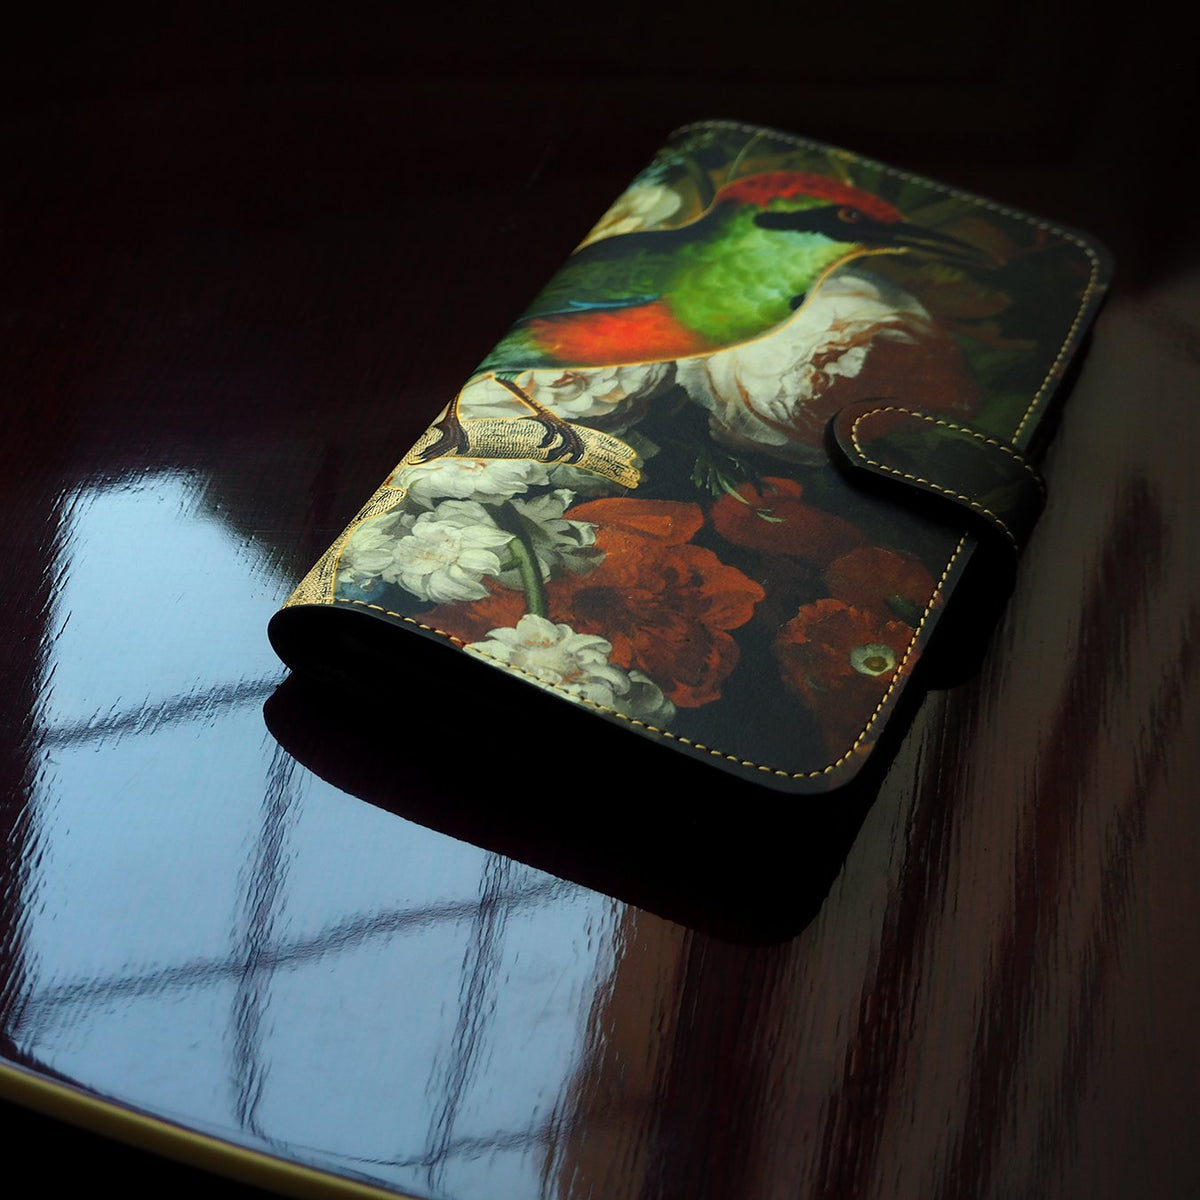 Leather Folio Phone Case - nature print - Bee eater bird - Black case - Botanical Dream Phone case Tovi Sorga